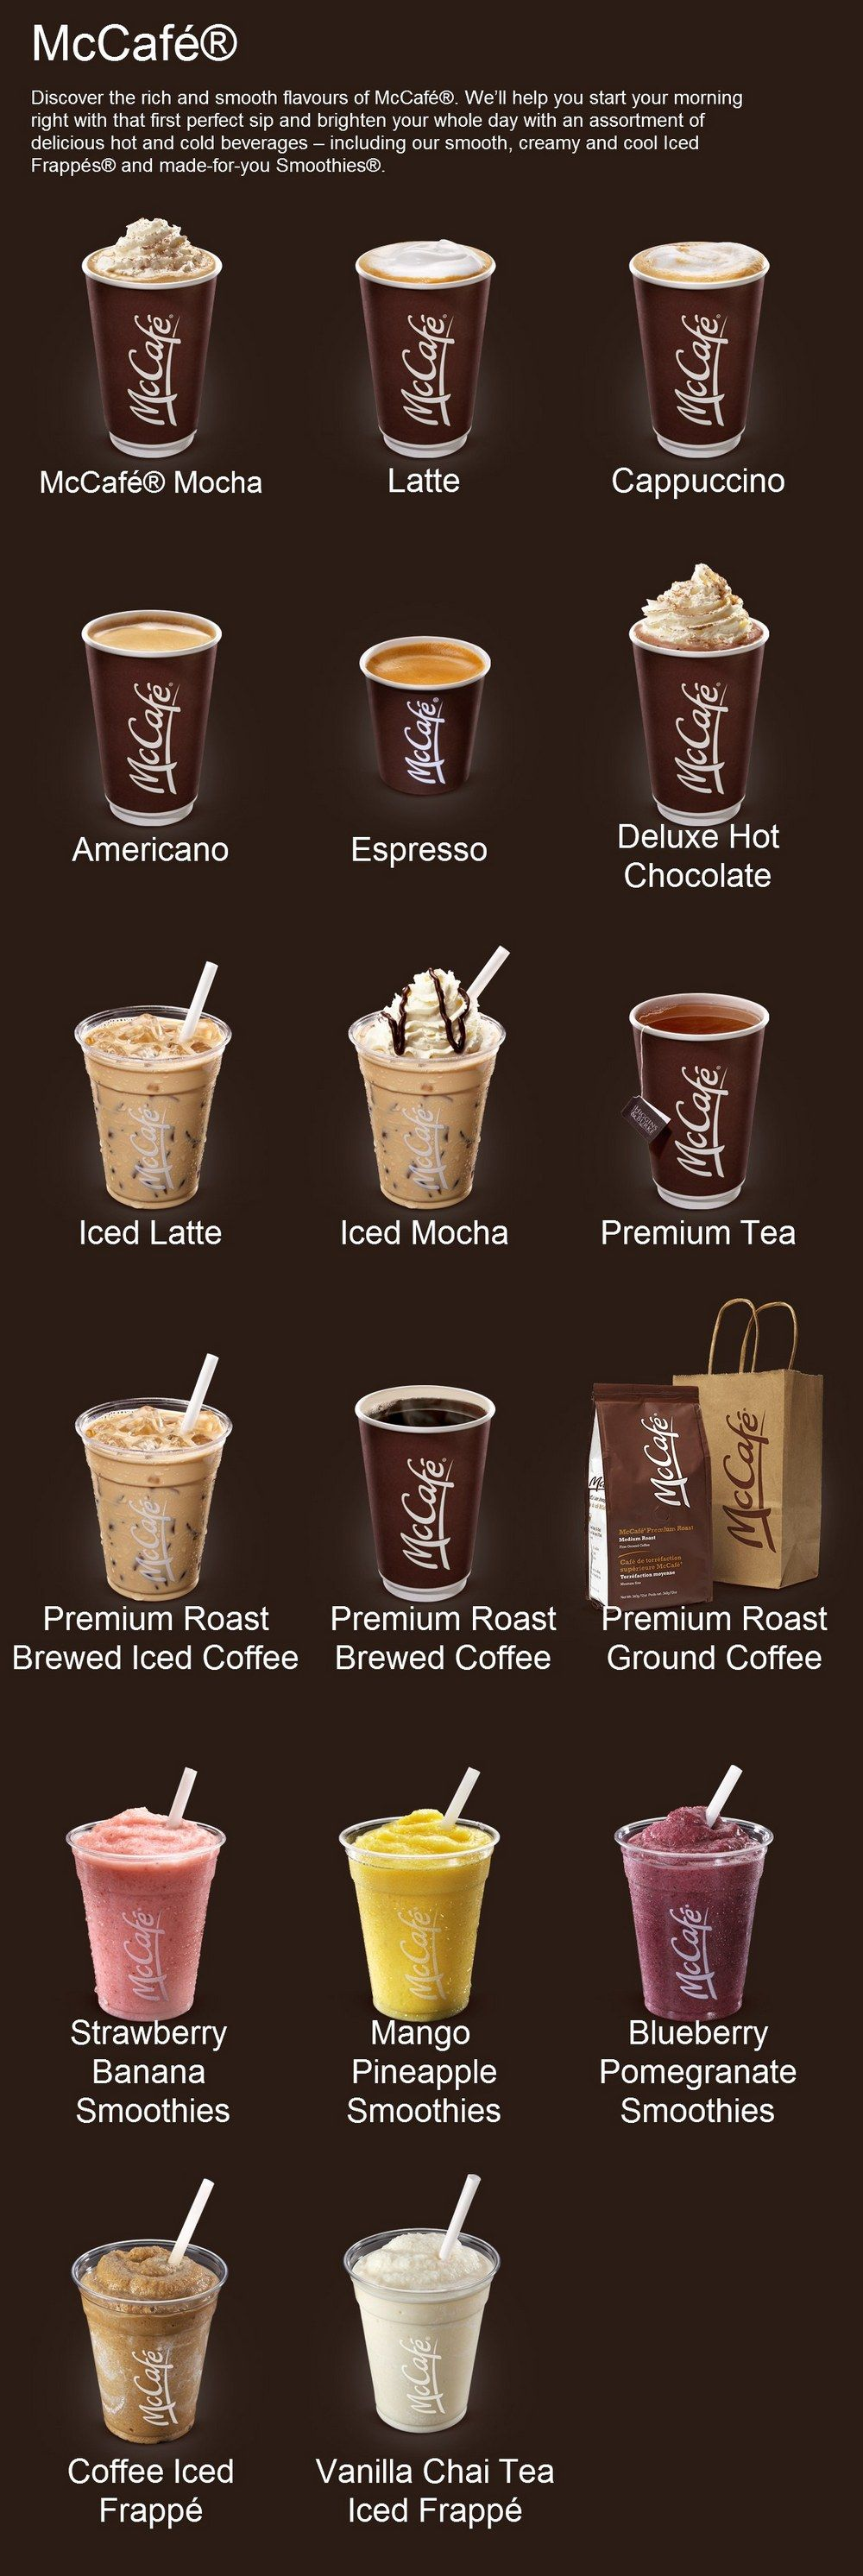 7 the menu at mccafe is simple and clear which made the